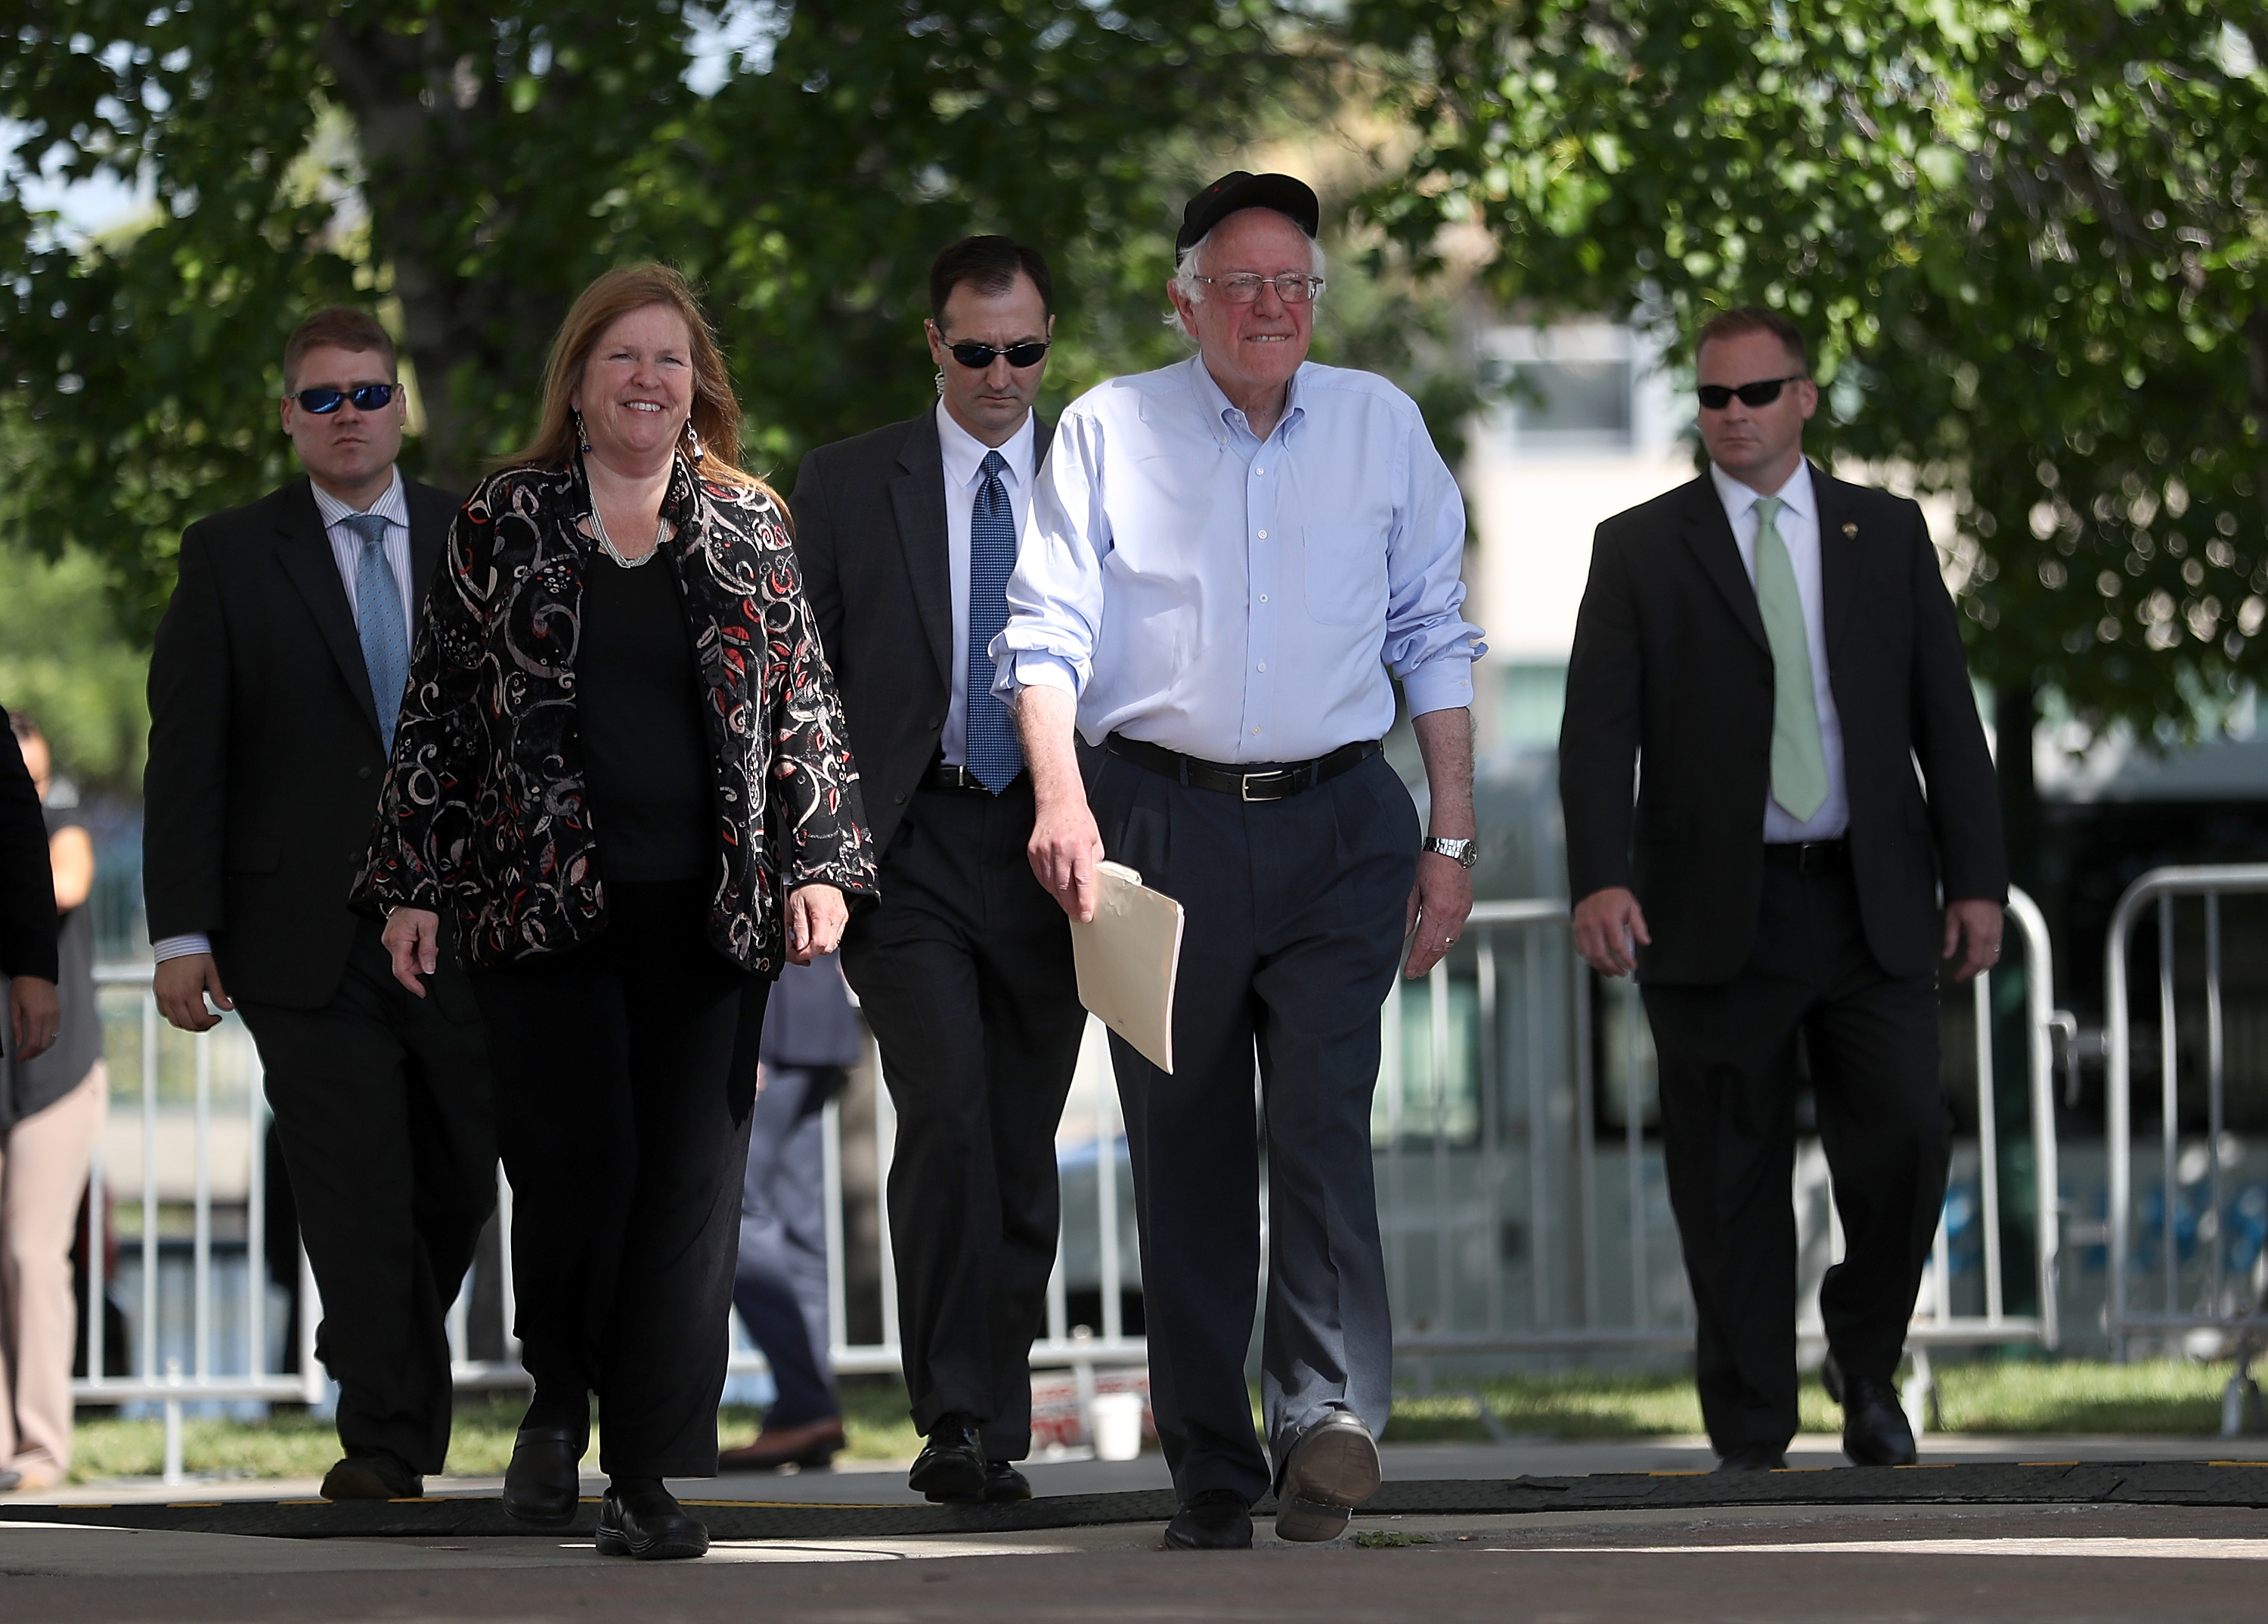 Democratic presidential candidate Sen.Bernie Sanders (D-VT) (2nd R) and his wife Jane O'Meara Sanders arrive at a campaign rally on May 10, 2016 in Stockton, California. Sanders is campaigning in California ahead of the state's June 7th presidential primary.